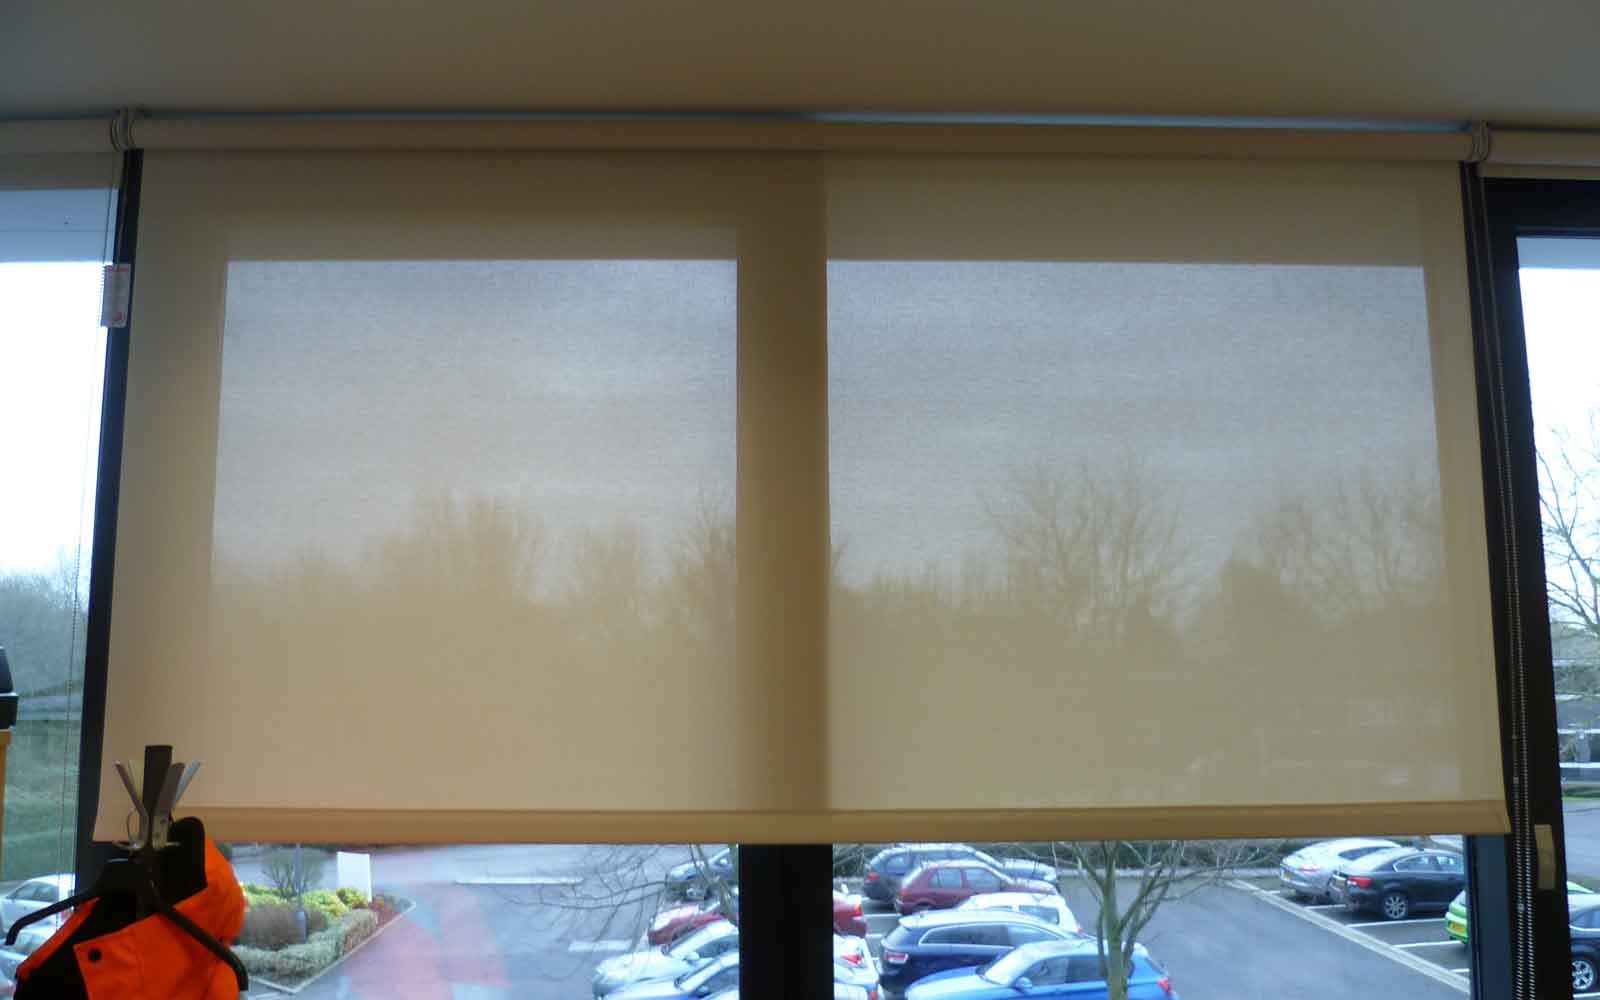 Screen Fabric Roller Blinds In An Office